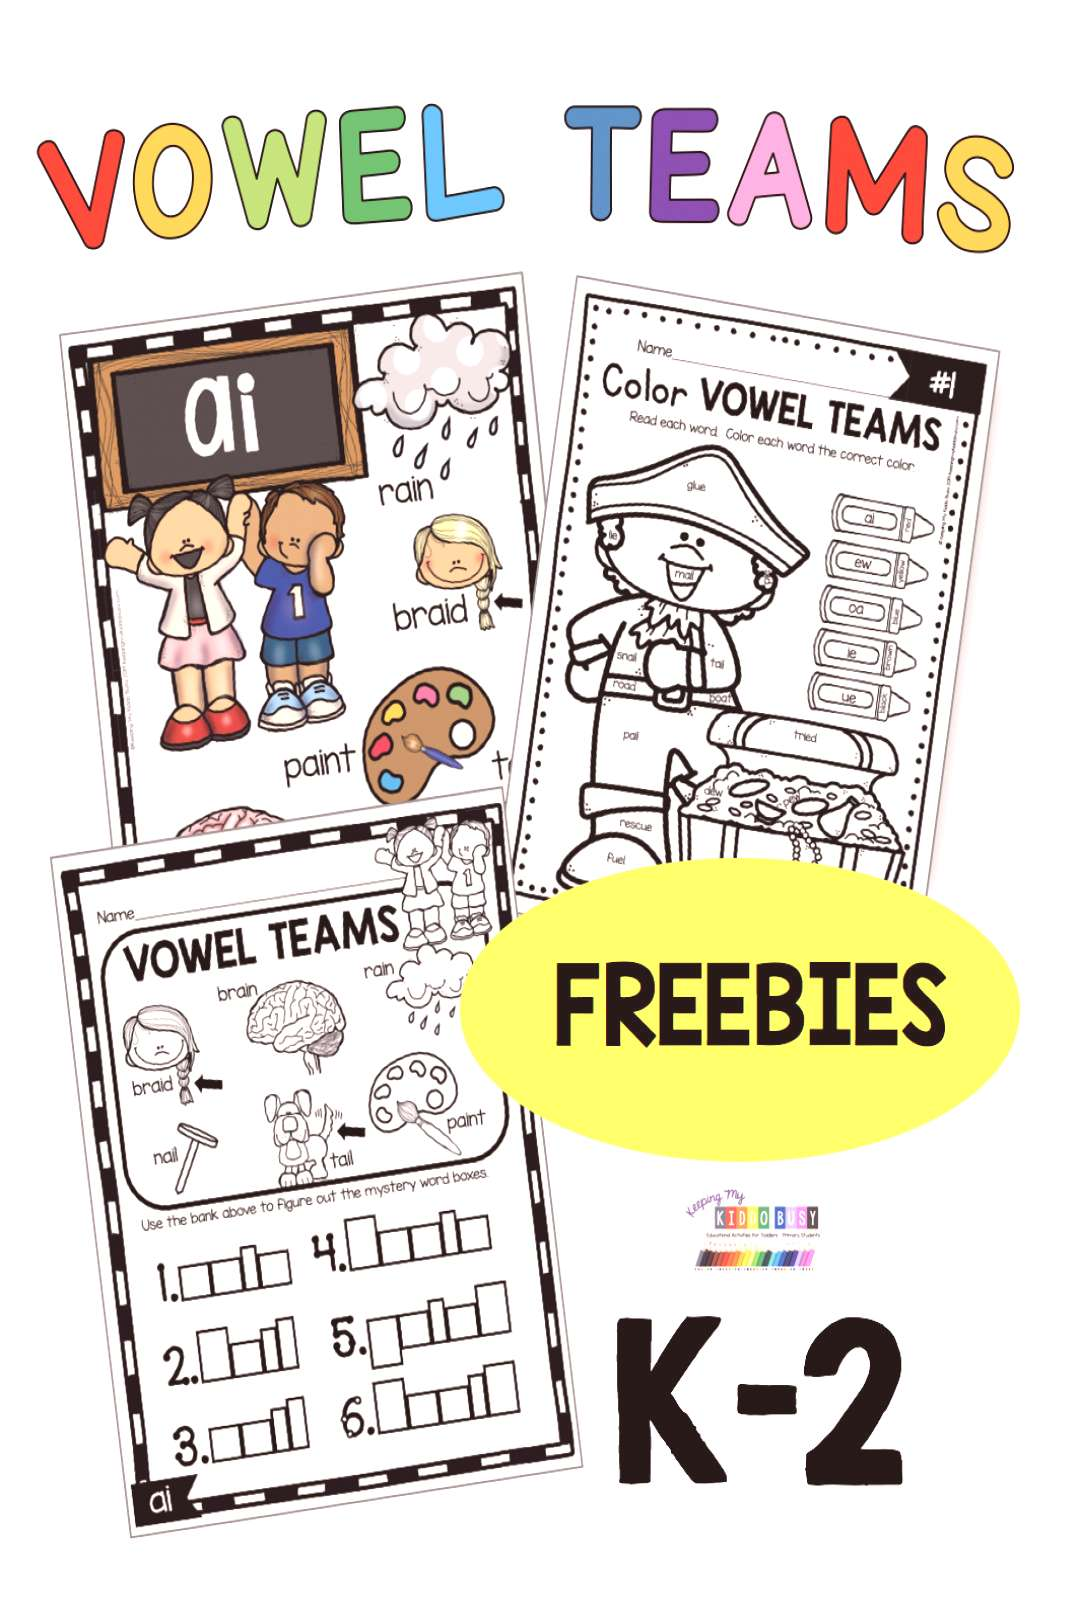 FREE Vowel Teams Activities and worksheets amp kindergarten first grade second grade phonics lessons